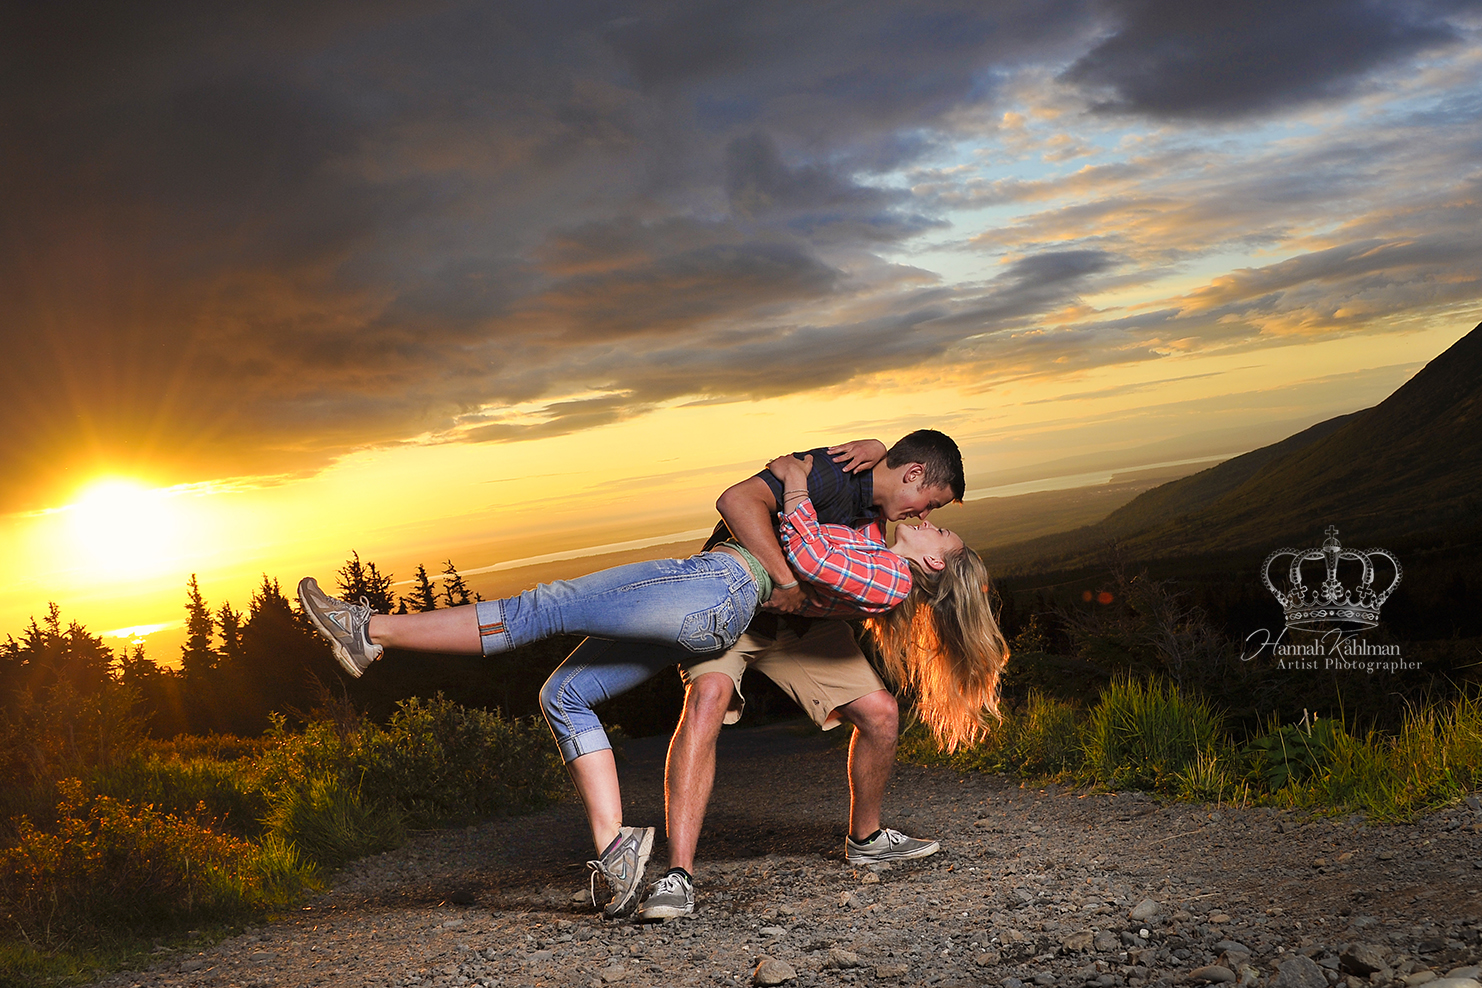 Romantic_engagement_photo_outdoors_sunset_dip_Anchorage_Alaska_Eagle_River_Alaska_portrait_photograp